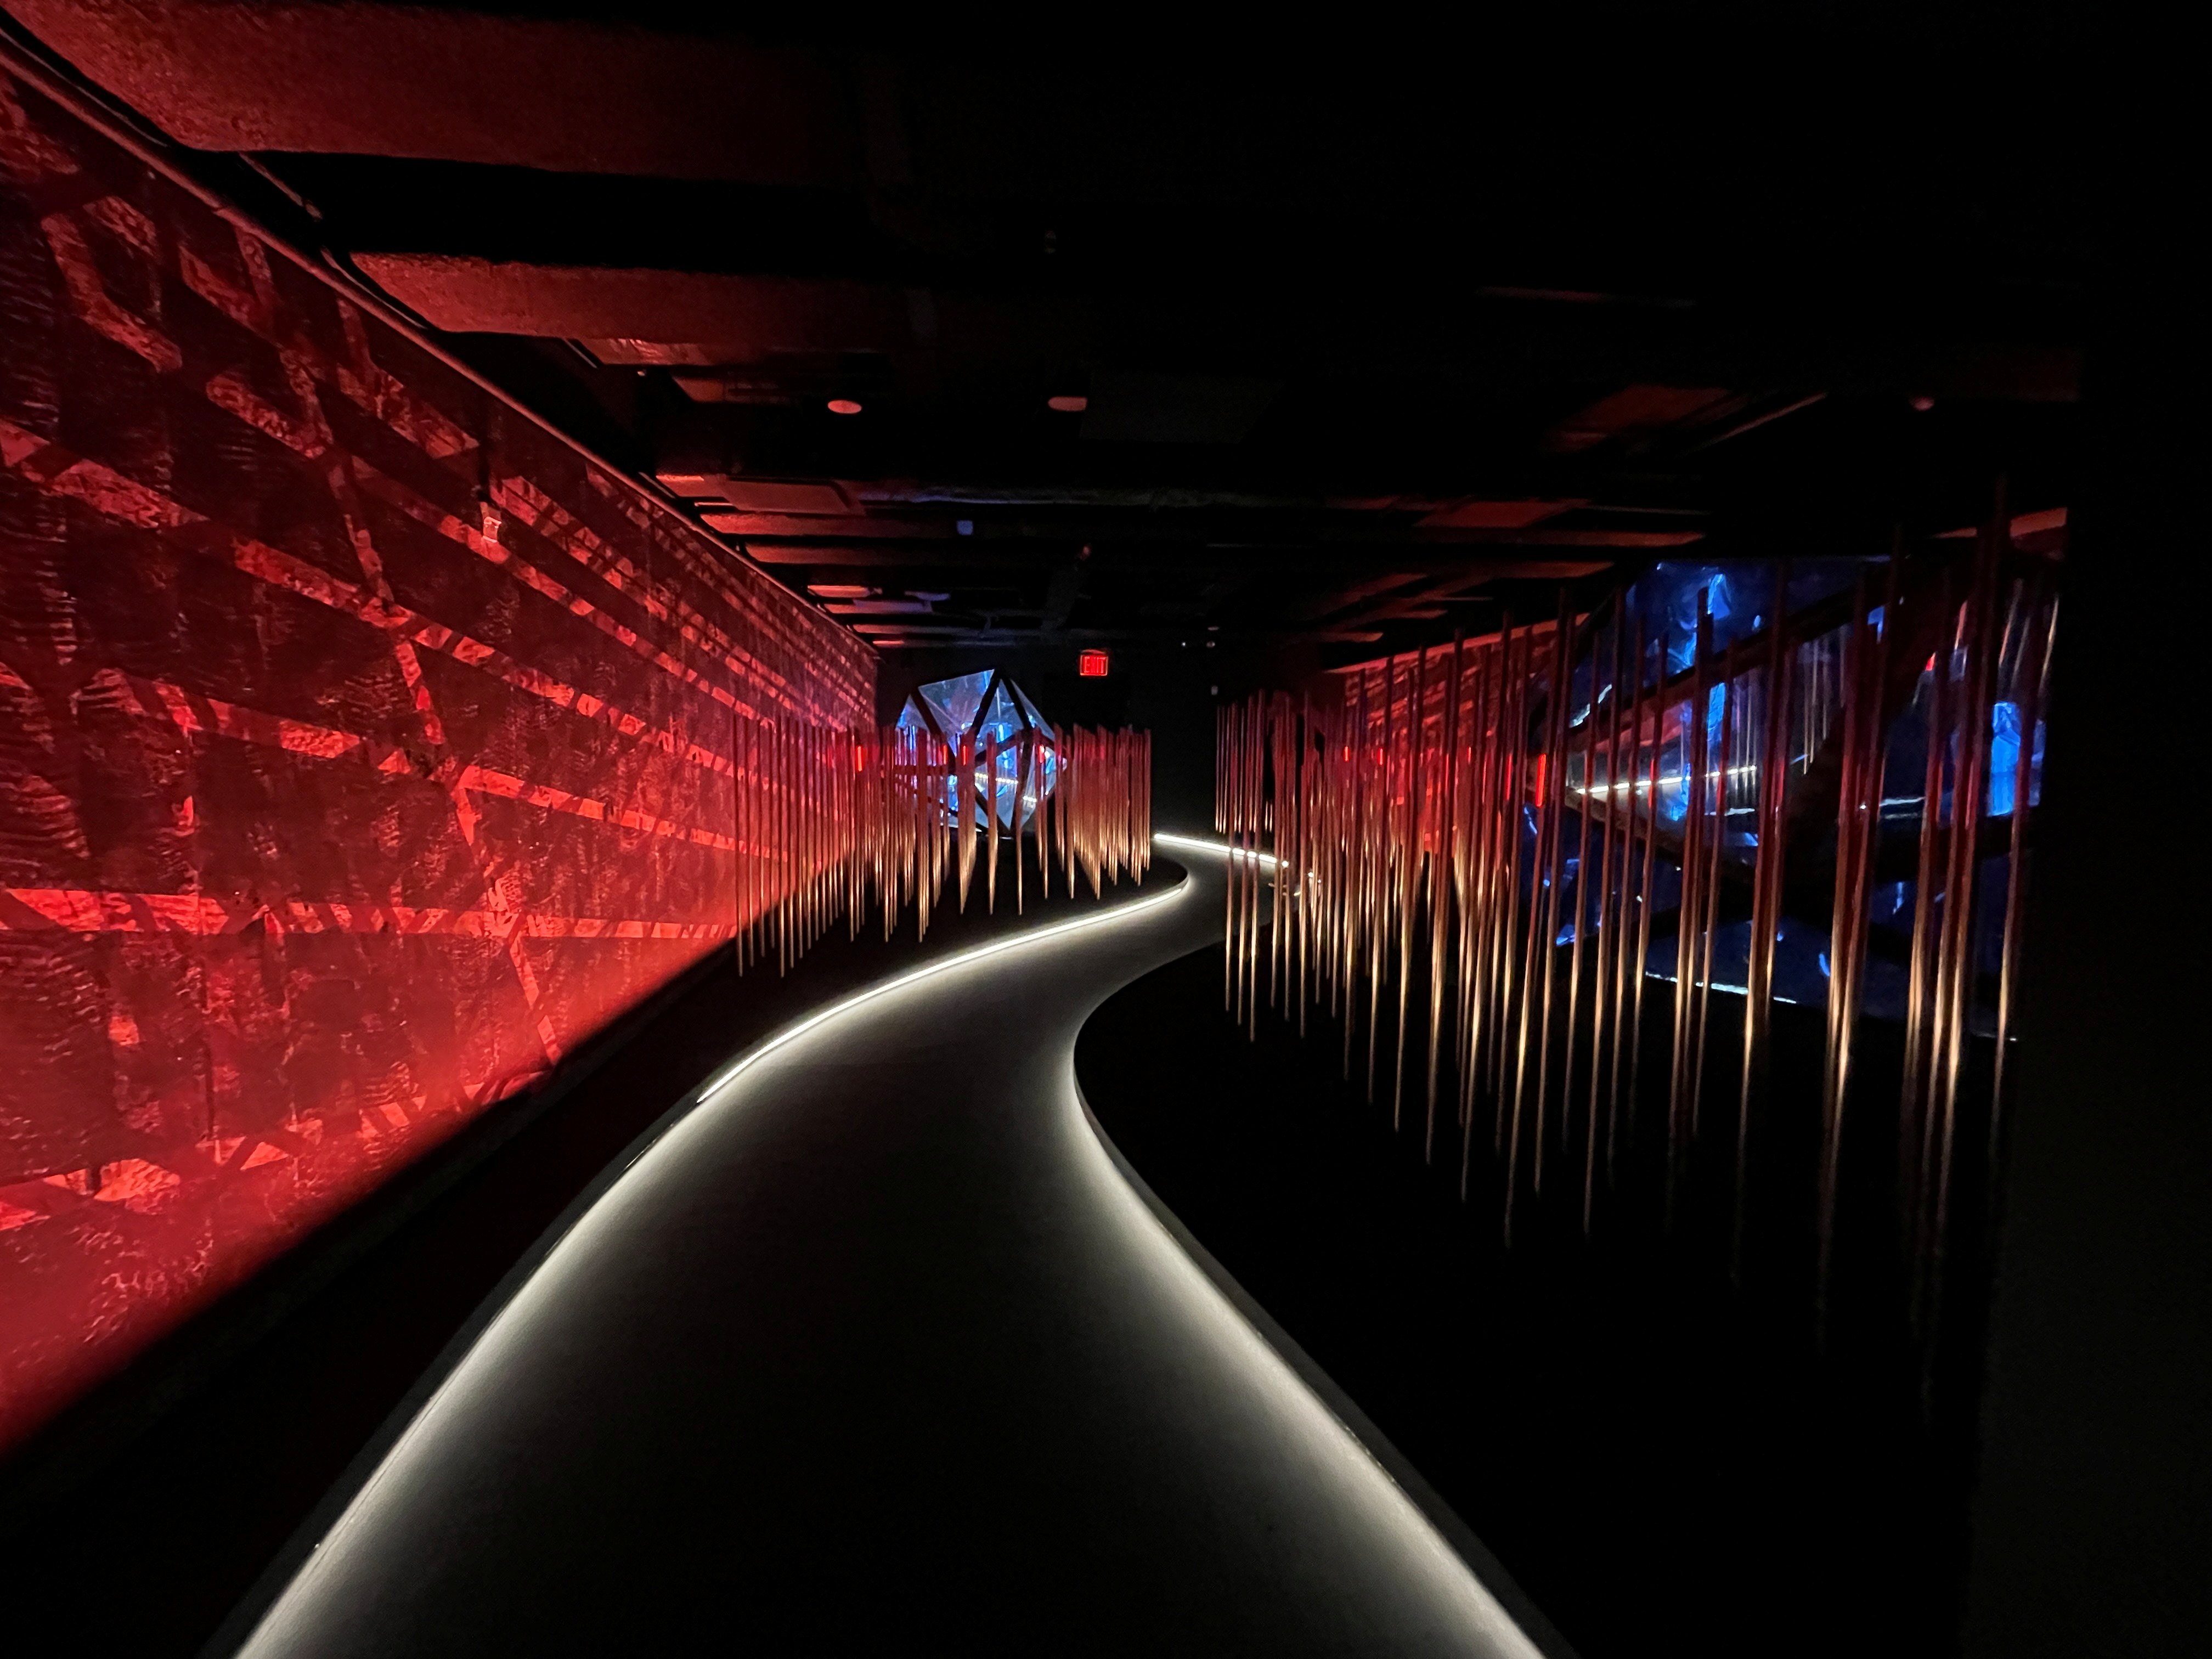 General view of the Great Jones Distilling Co. permanent immersive installation in New York, NY, U.S., September 16, 2021. Picture taken September 16, 2021. REUTERS/Roselle Chen